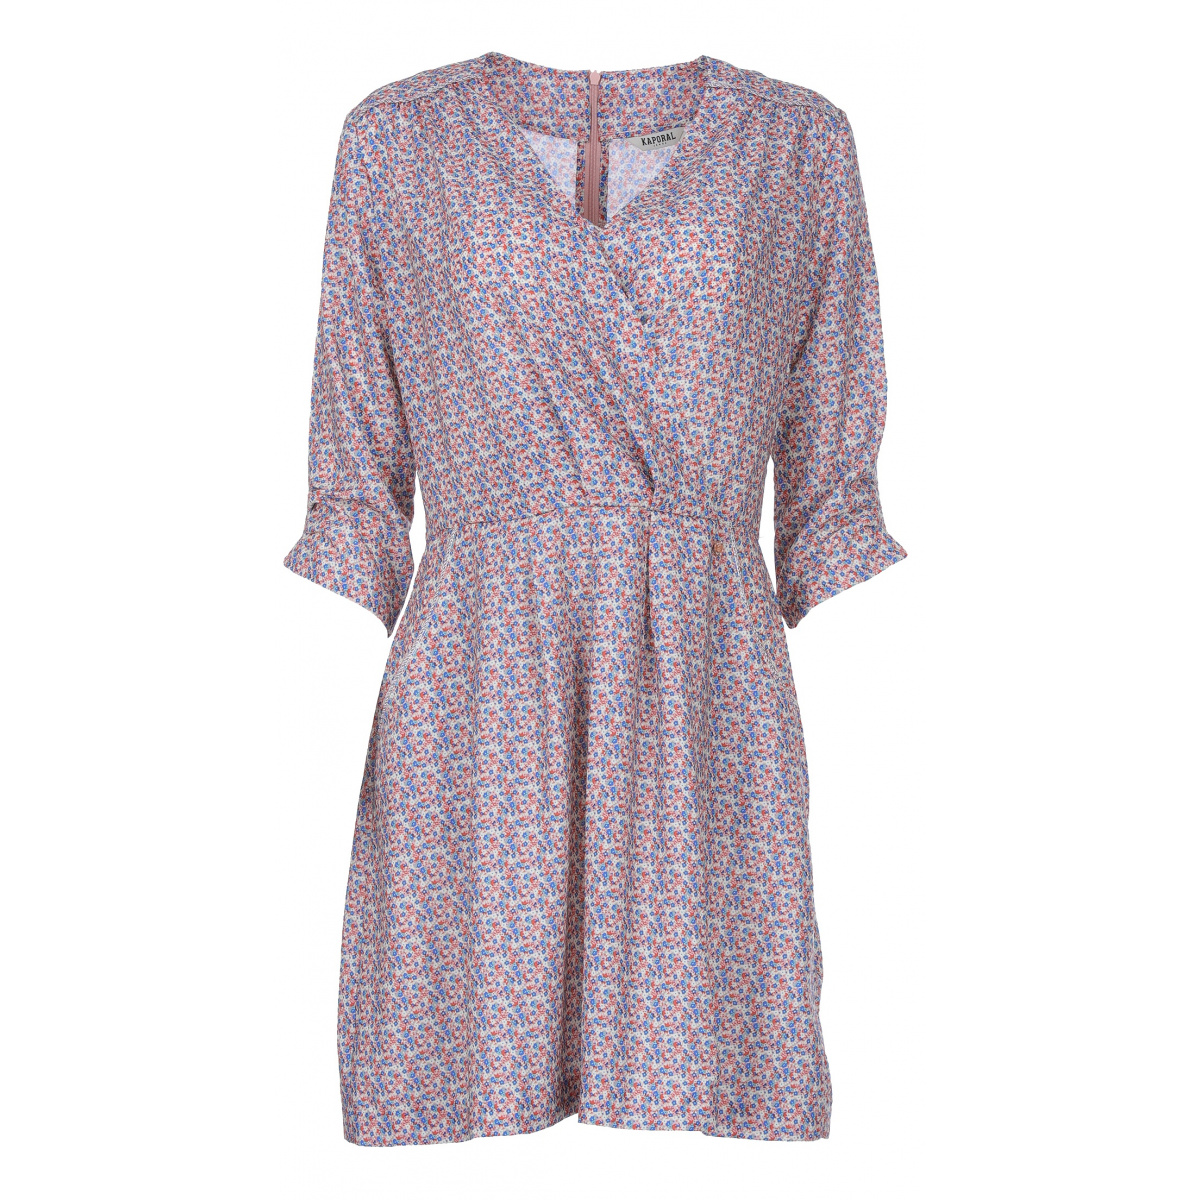 Robe Manches Longues Babee Femme Kaporal Ccv Mode